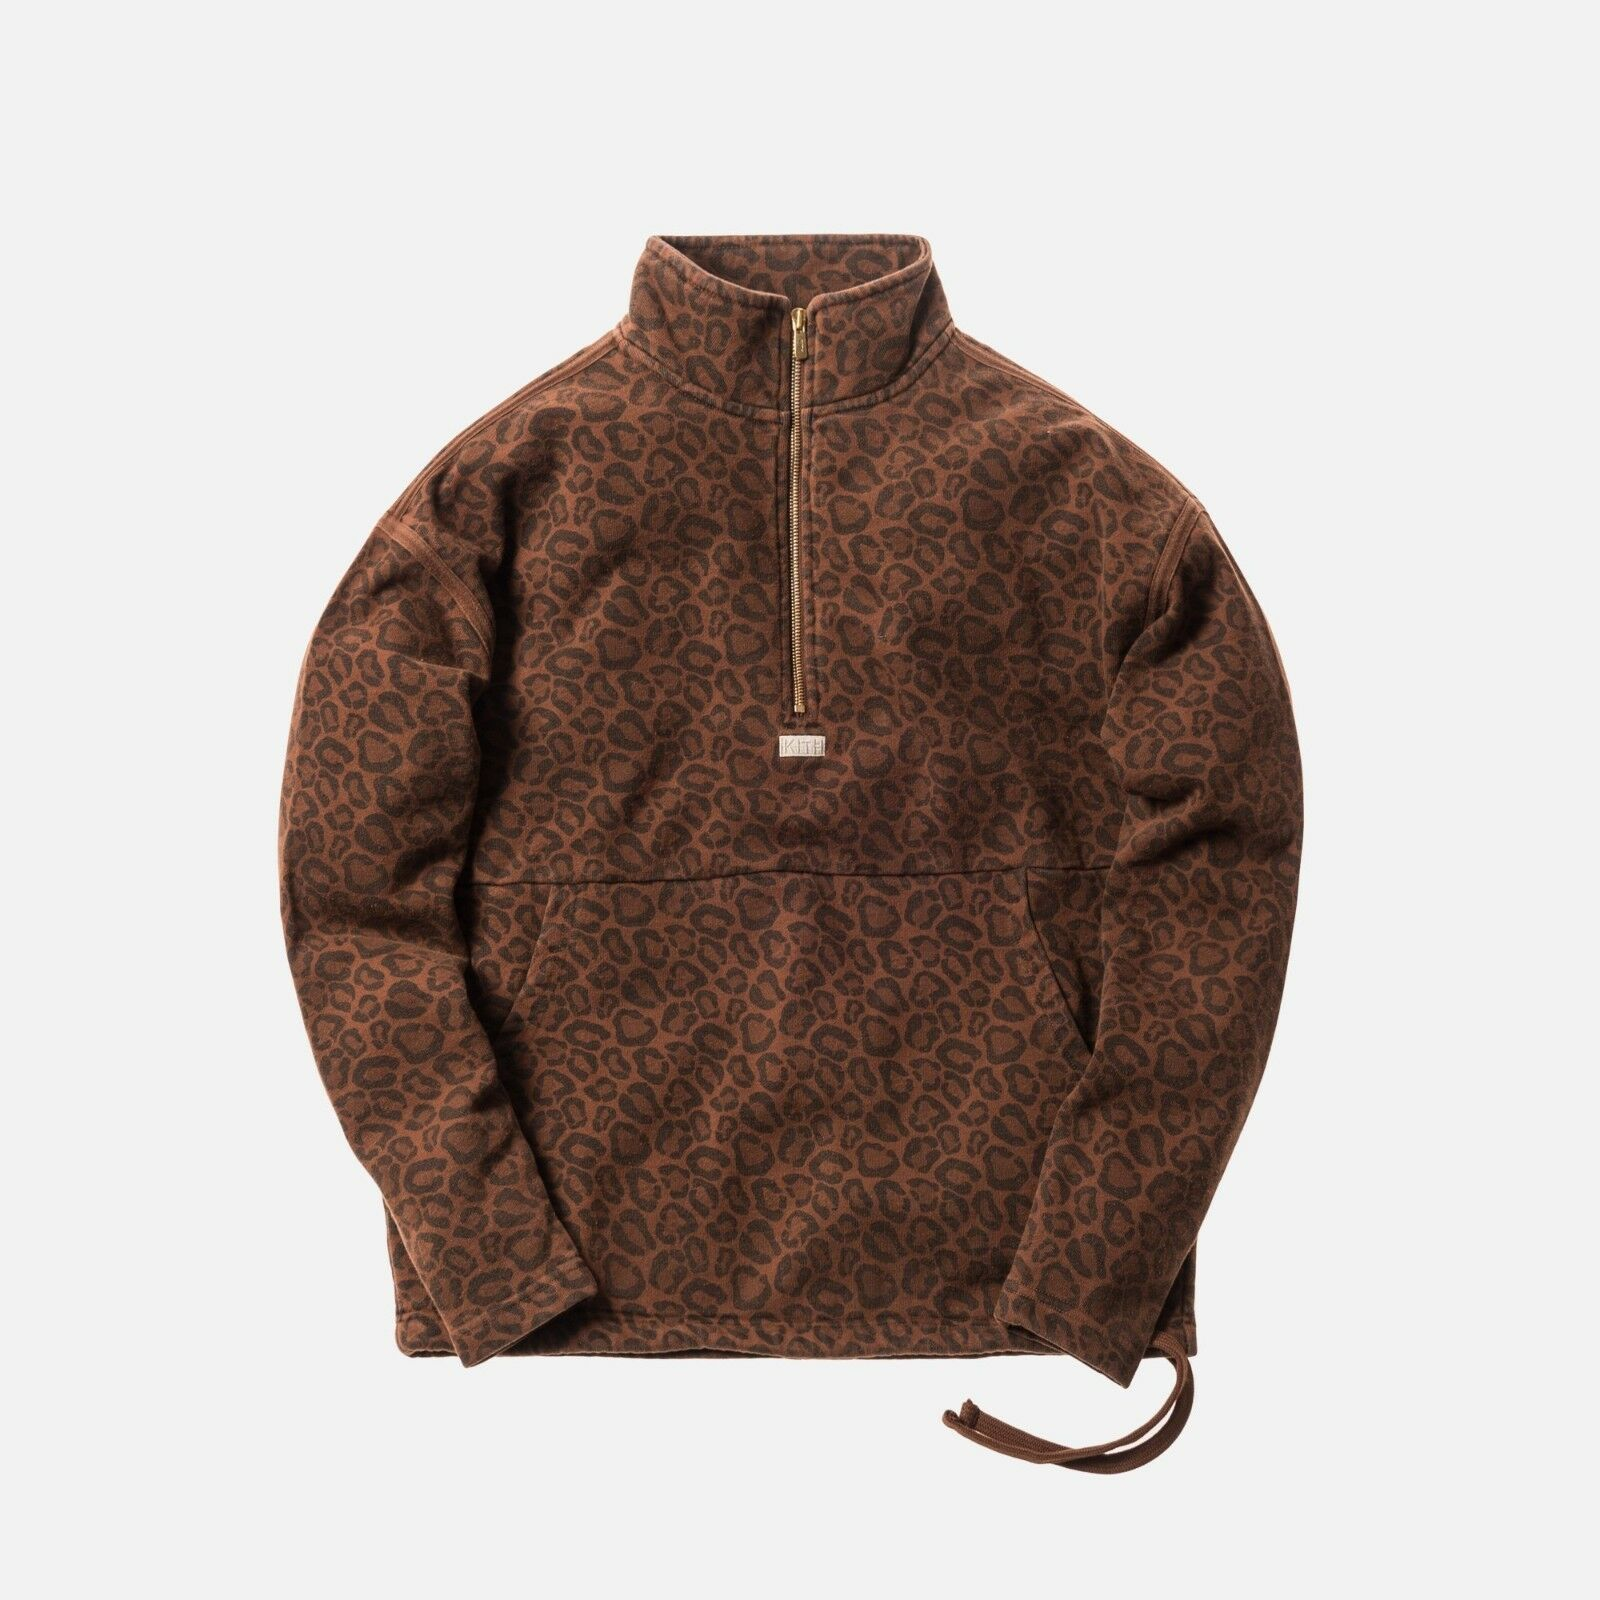 KITH CLASSIC L/S HALF ZIP PULLOVER CHEETAH KH2128-117 SIZE L LARGE